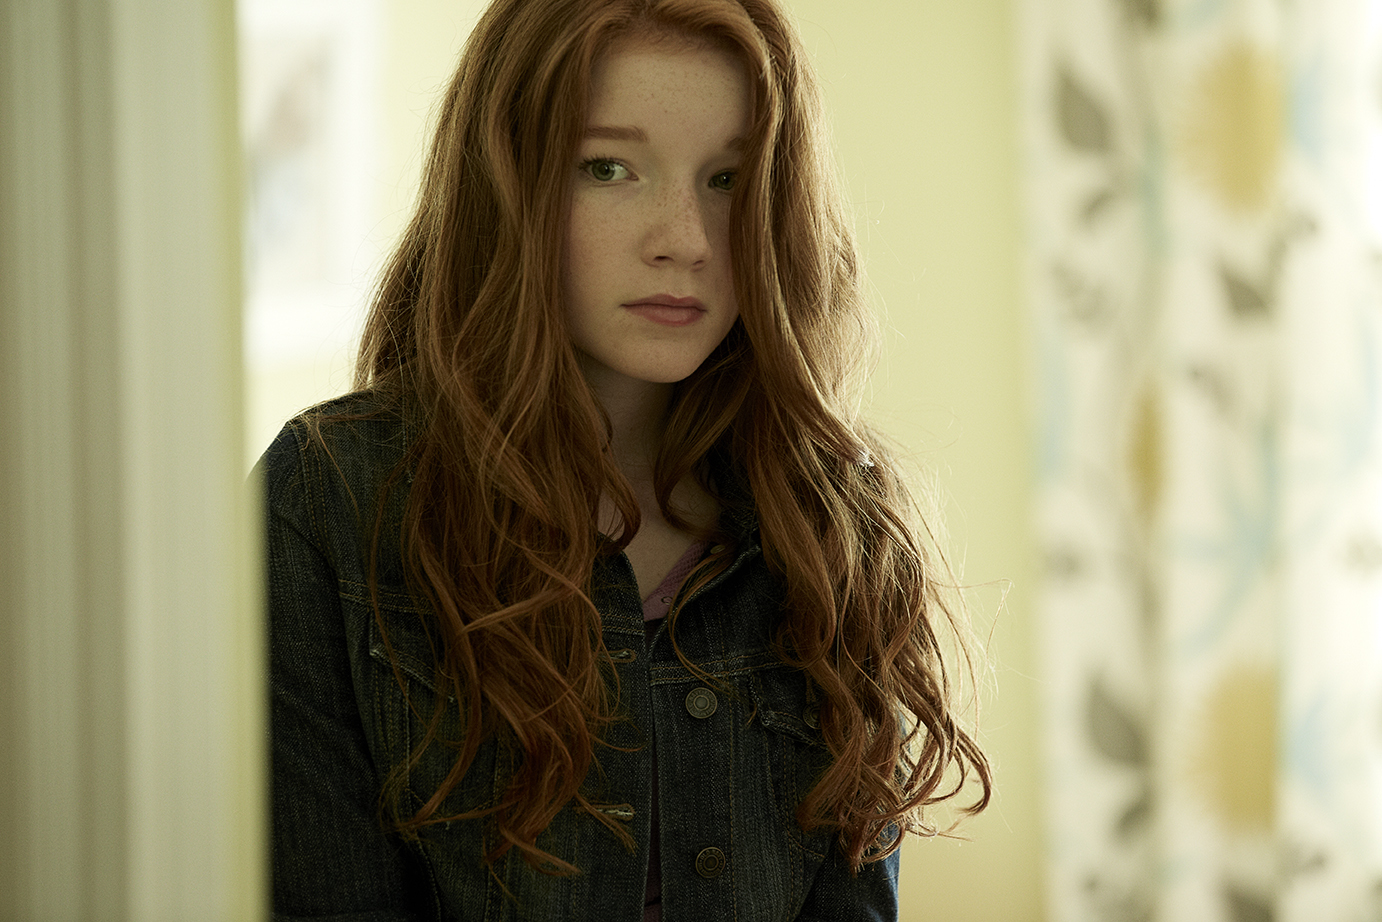 1382x922 - Annalise Basso Wallpapers 4